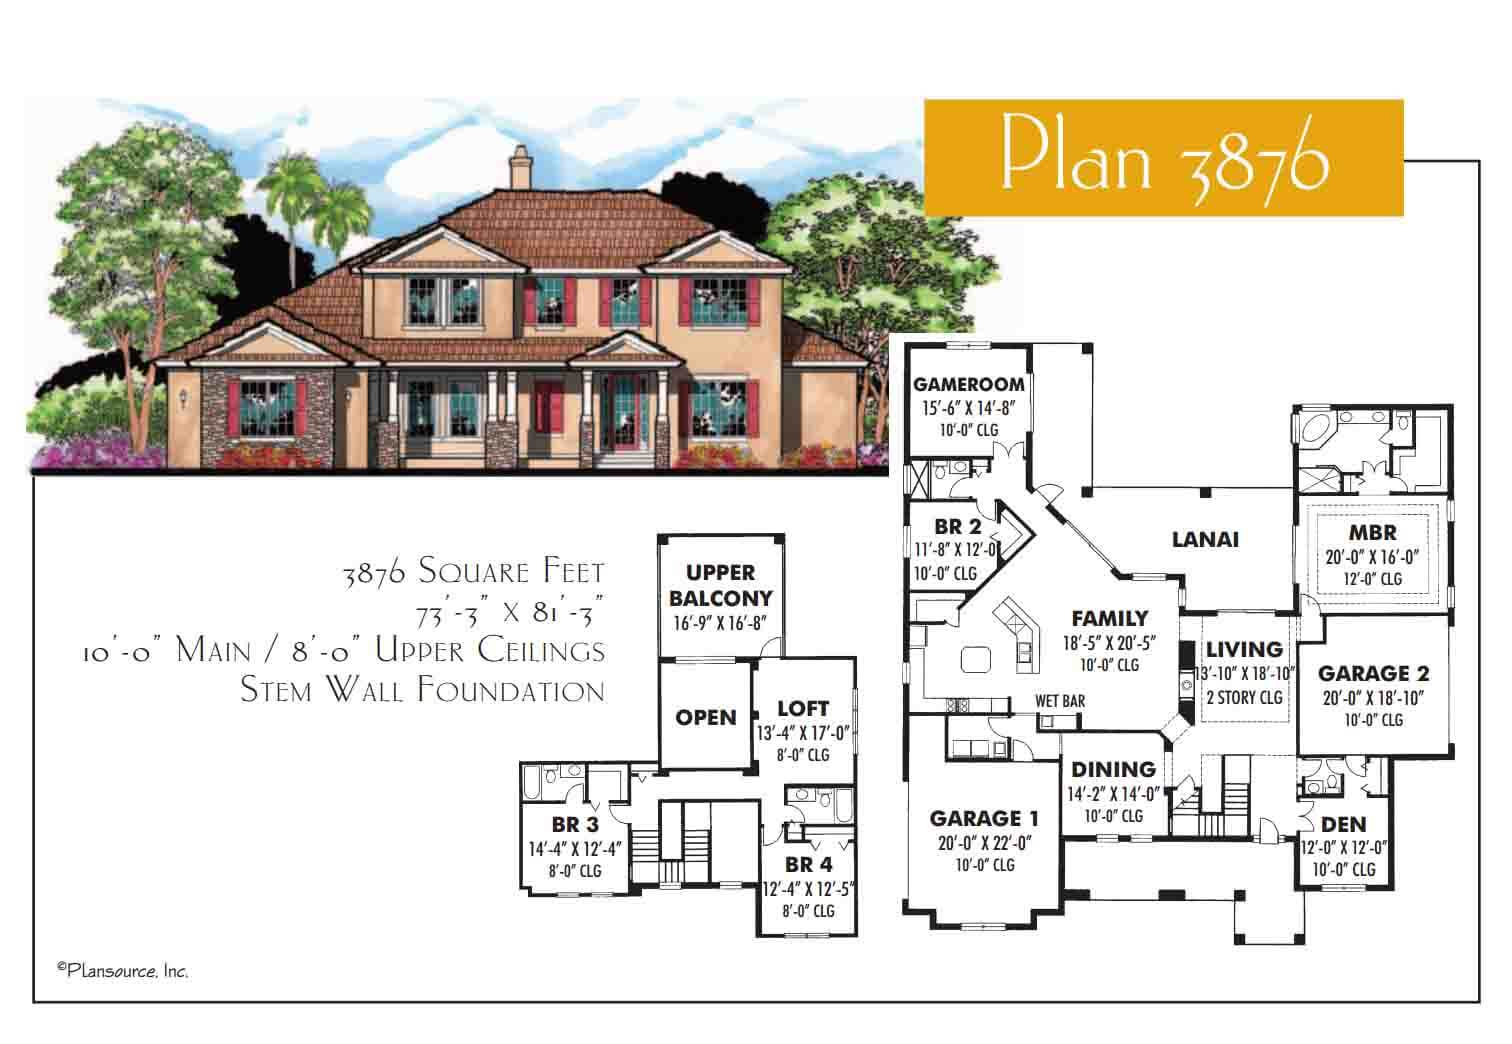 Floor Plans,3,501 SQ FT TO 4,000 SQ FT,1107